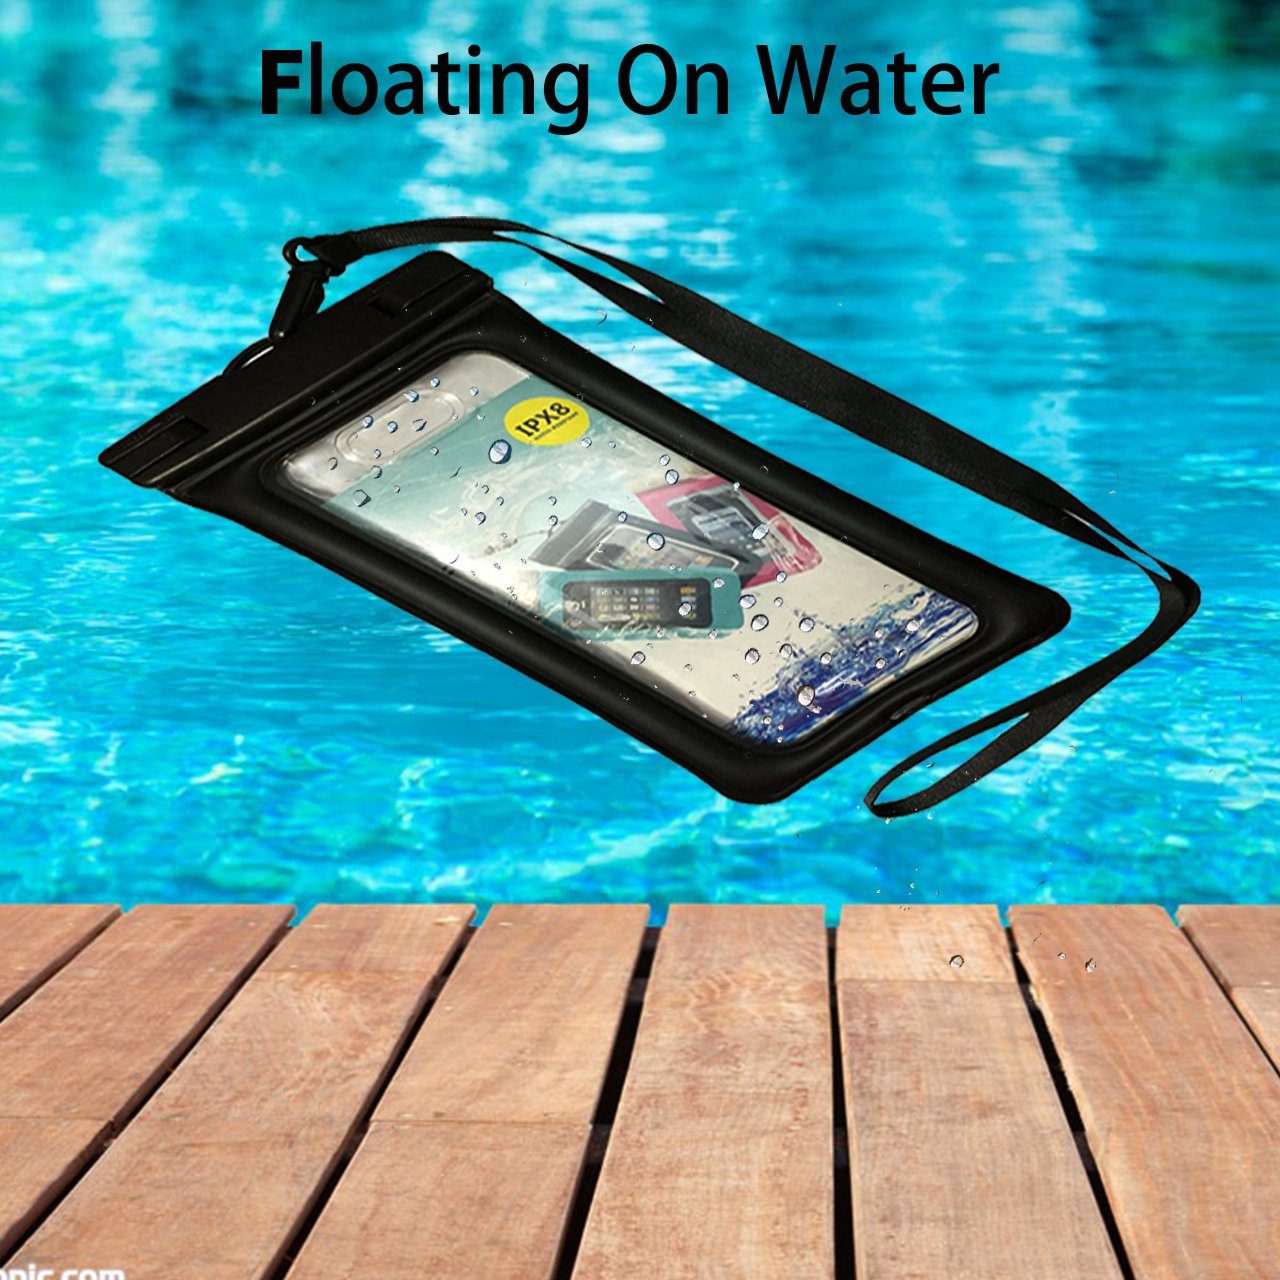 Hiking Boating Water Parks Clighting Fingerprint Unlock Waterproof Phone Case Floating Pouch Tpu Dry Bag Universal For Iphone Samsung Htc Lg Sony Cell Phone Up To 7 0 Kayaking Rafting Beach Cell Phones